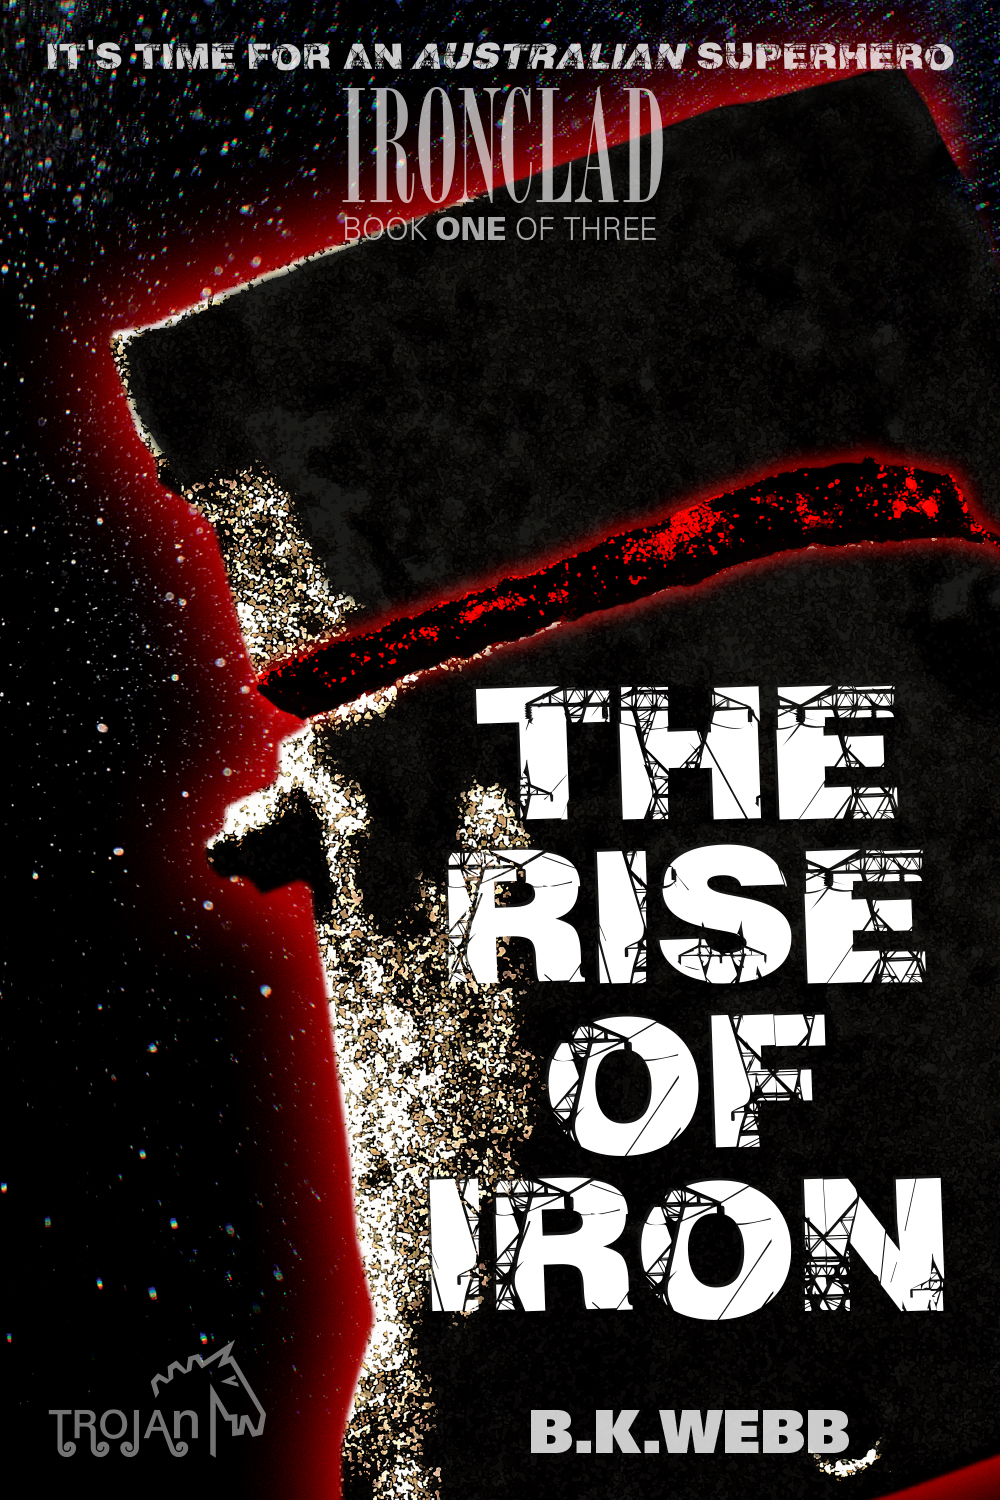 The Rise of Iron by B.K.Webb